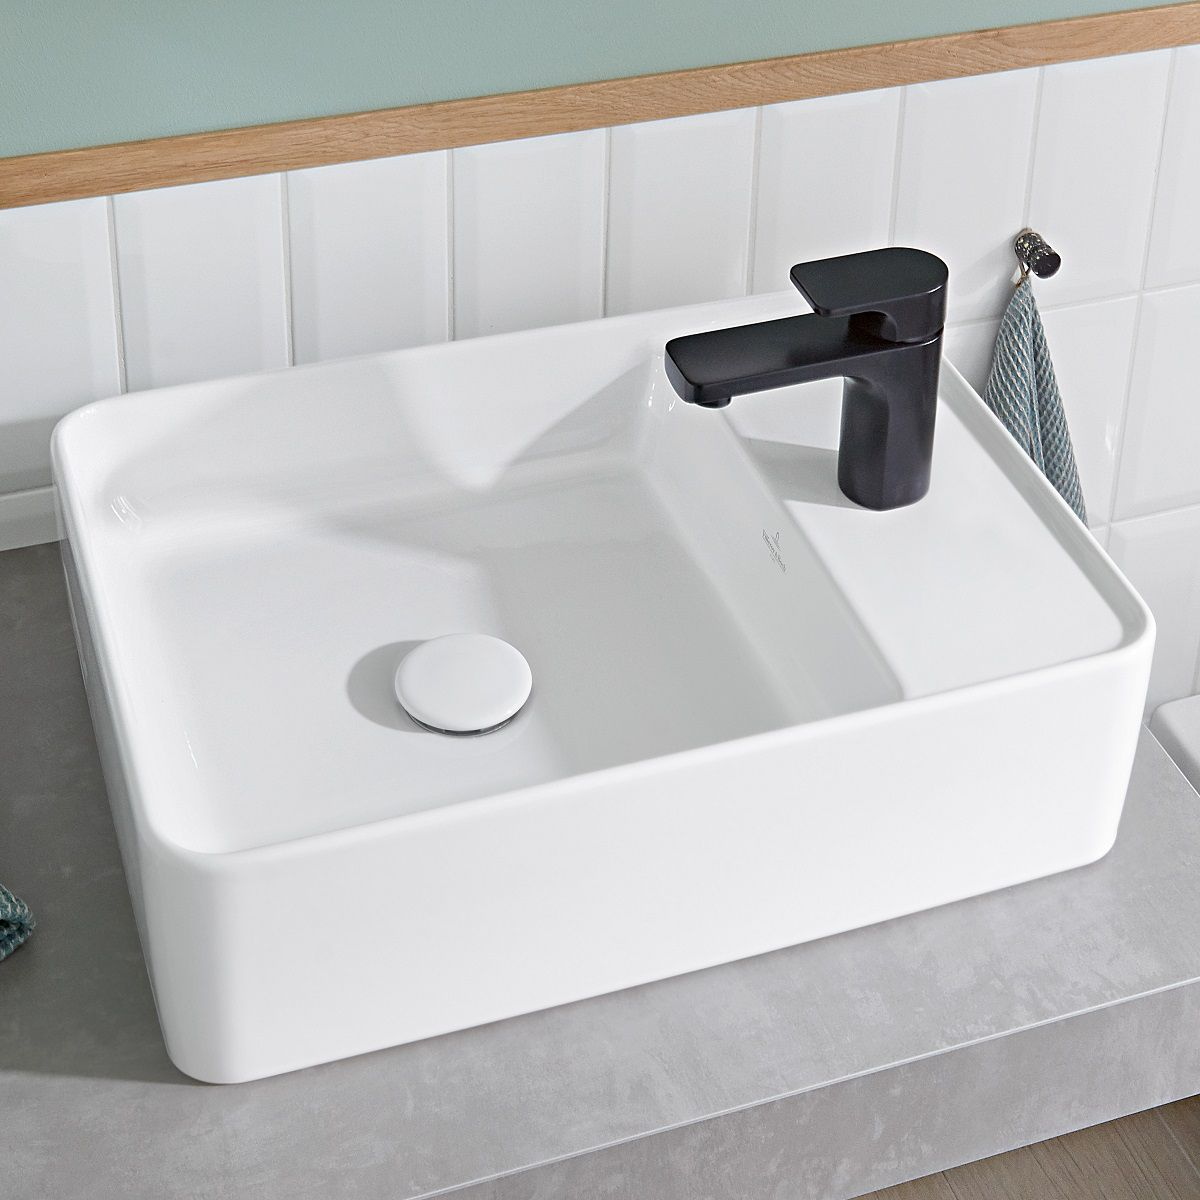 Villeroy & Boch Collaro Rectangular Countertop Basin with Tapledge